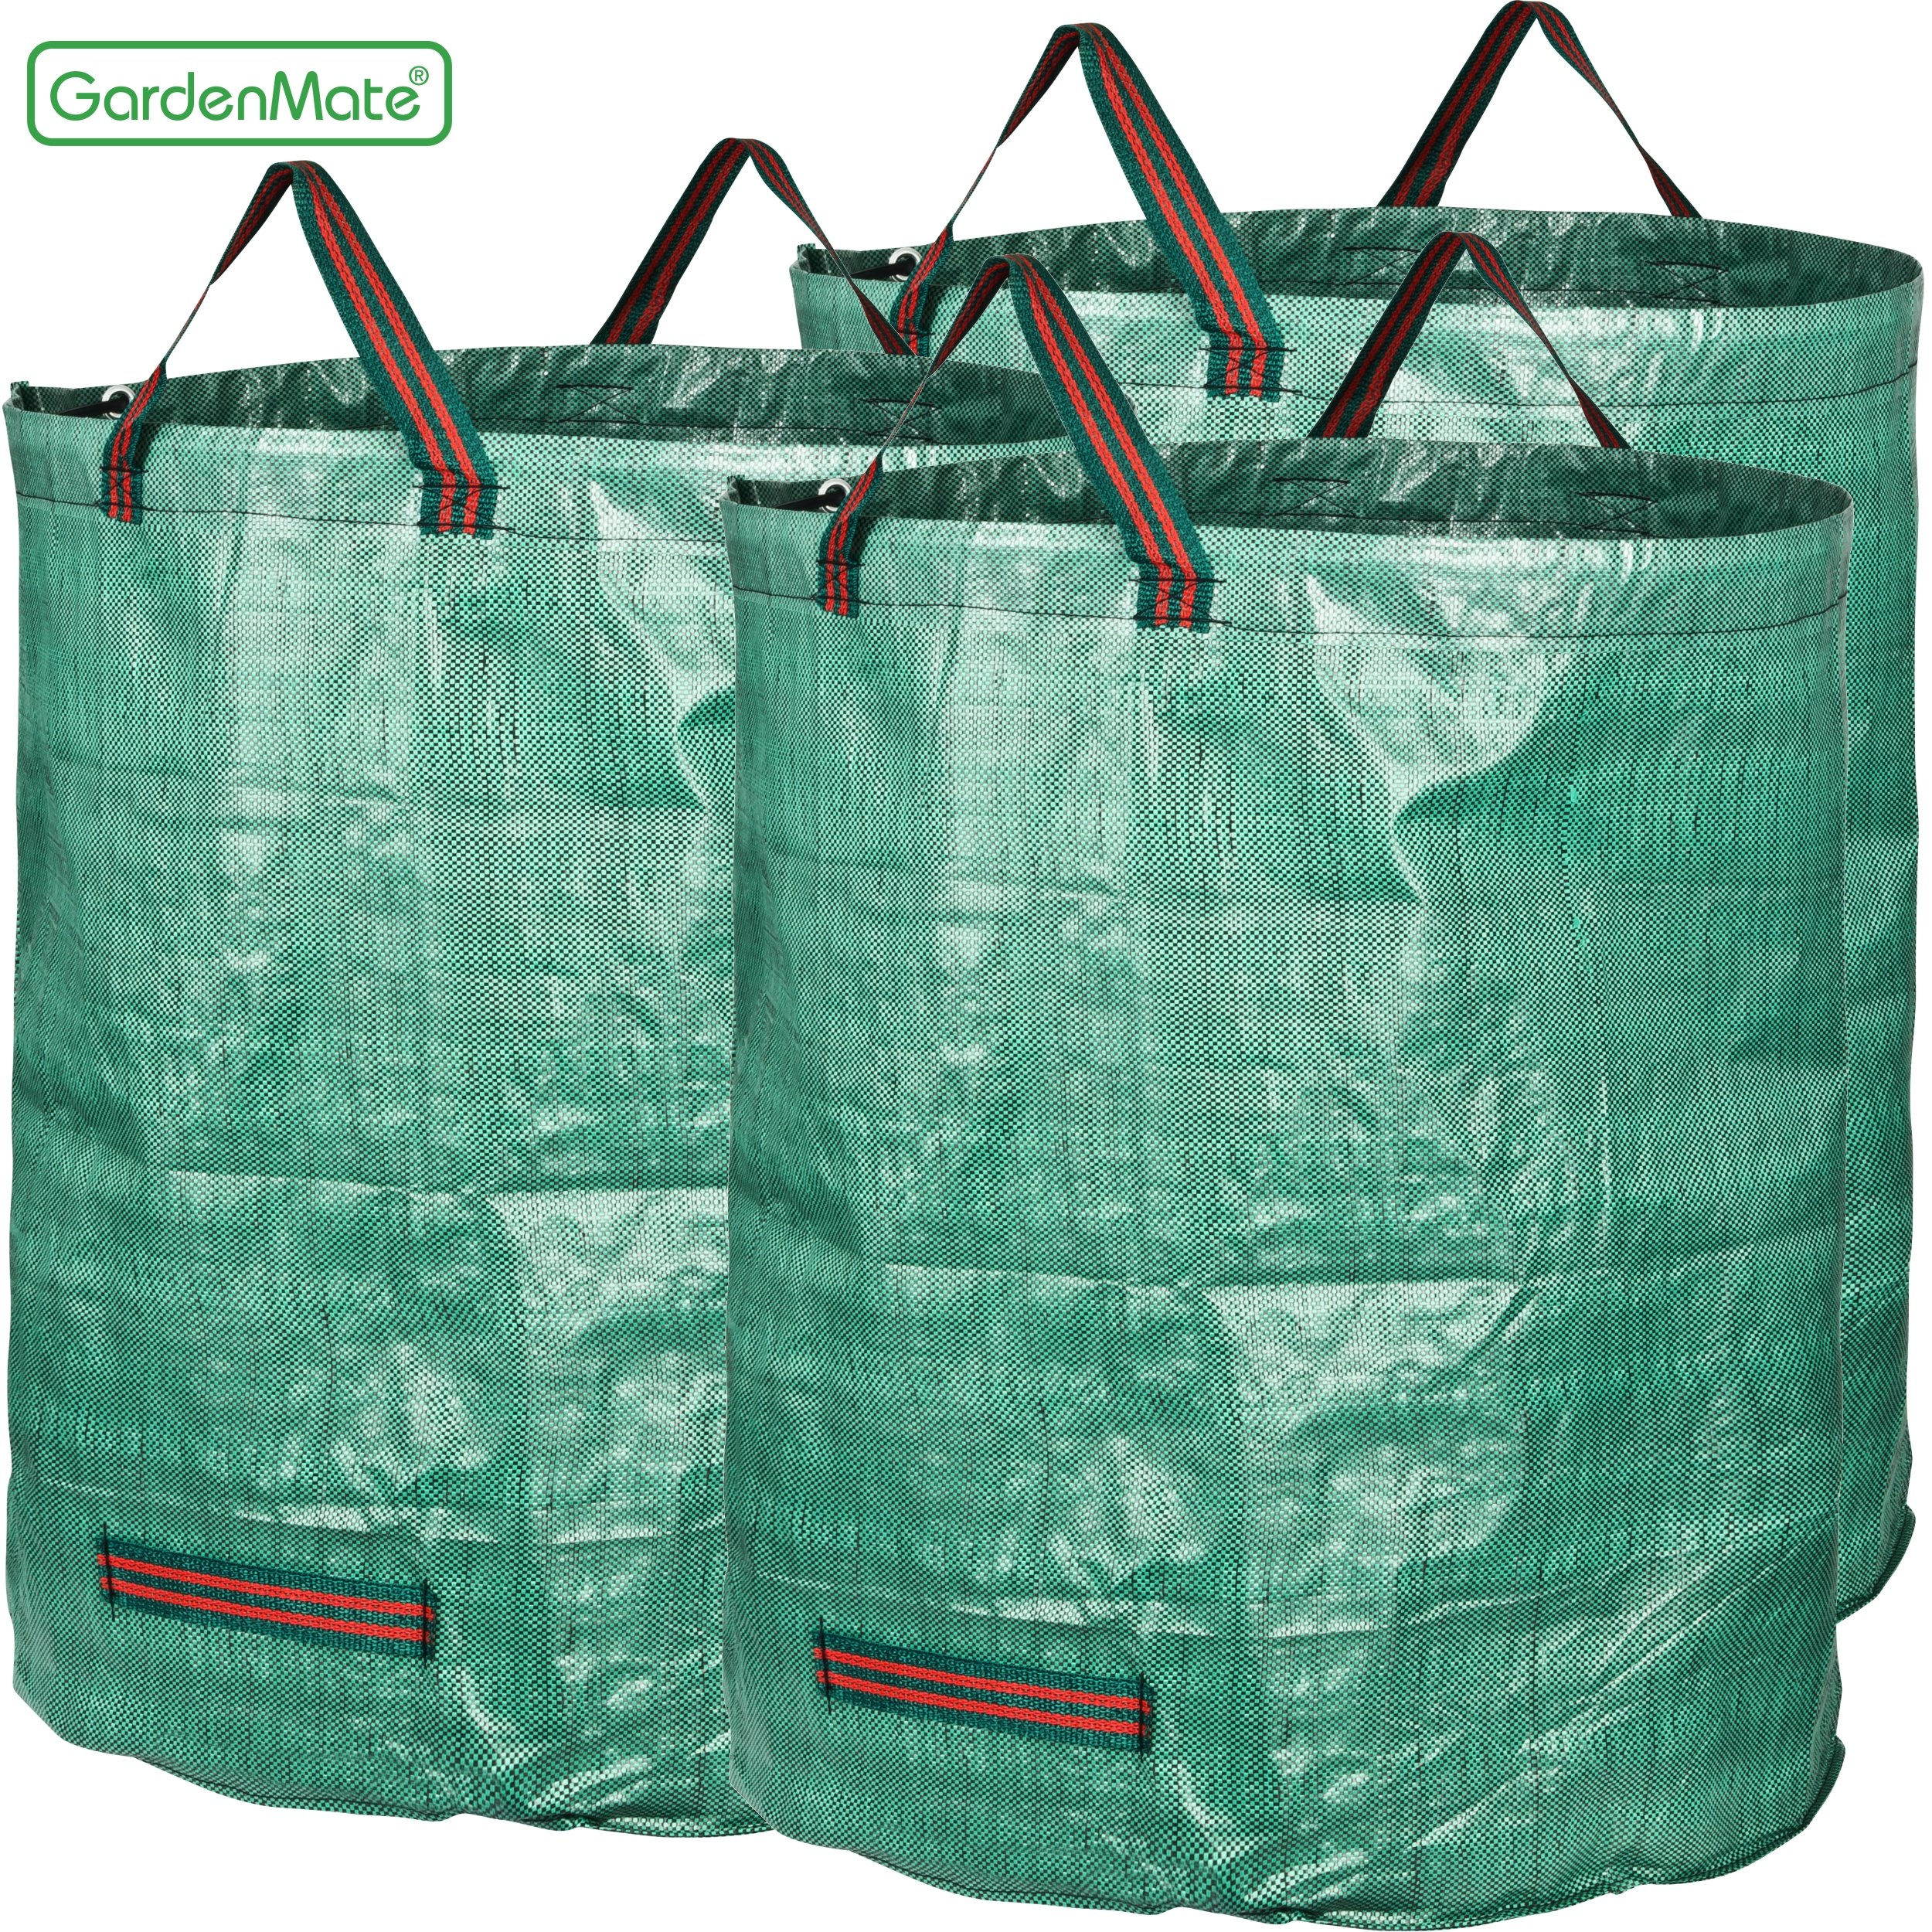 Best Rated in Yard Waste Bags & Helpful Customer Reviews - Amazon.com